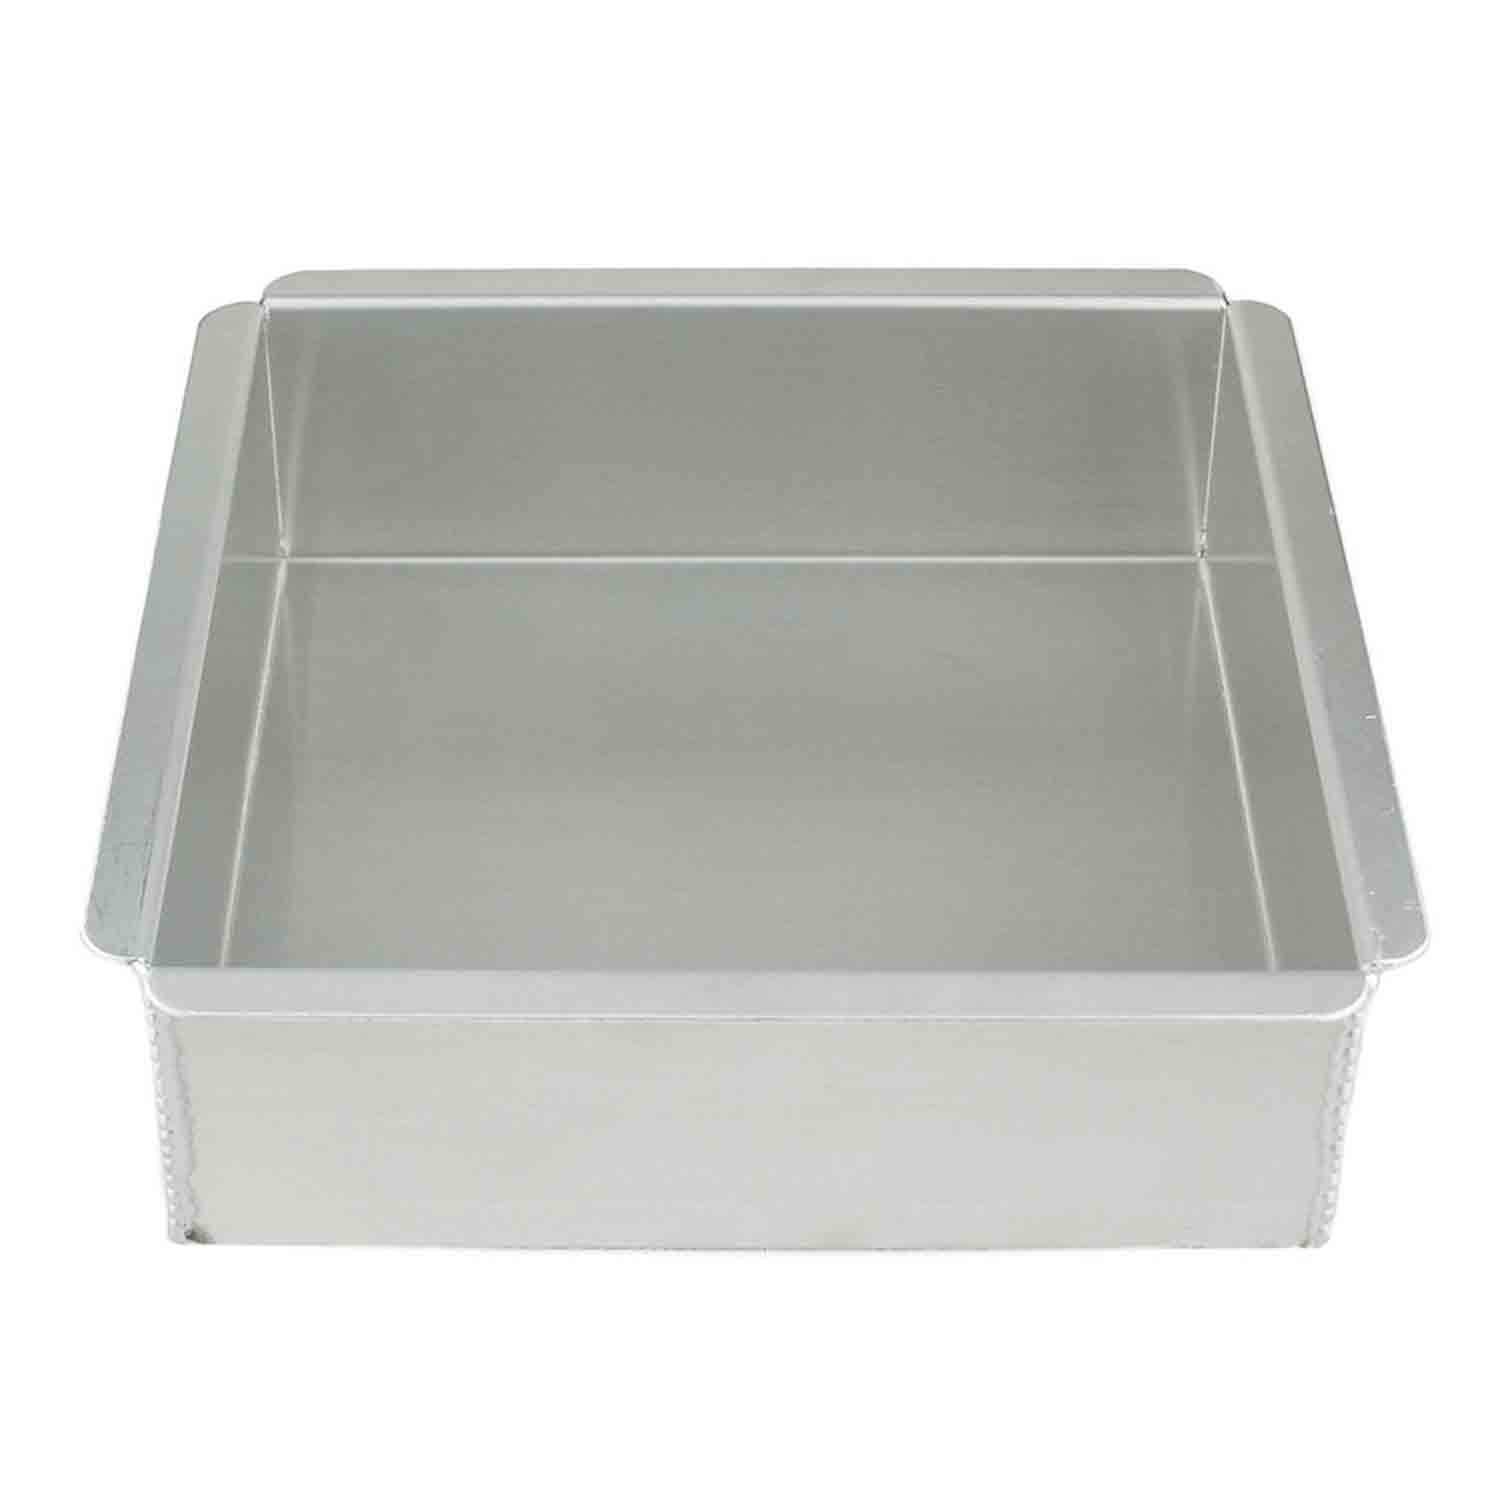 "10 x 3"" Magic Line Square Cake Pan"